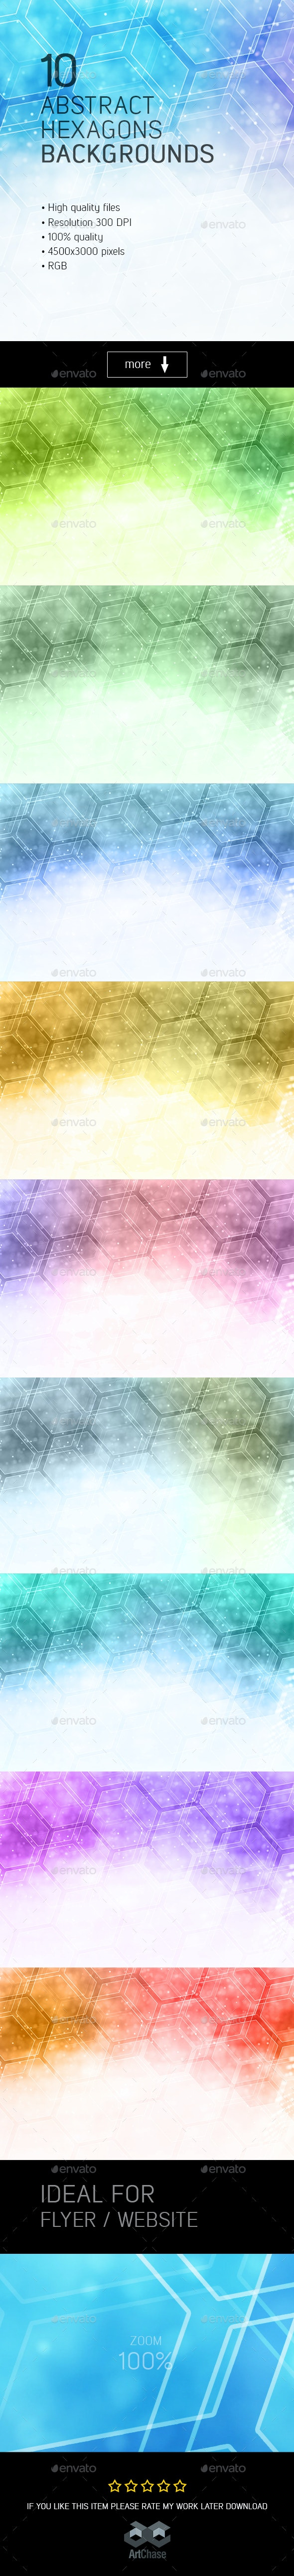 10 Abstract Hexagons Backgrounds - Abstract Backgrounds